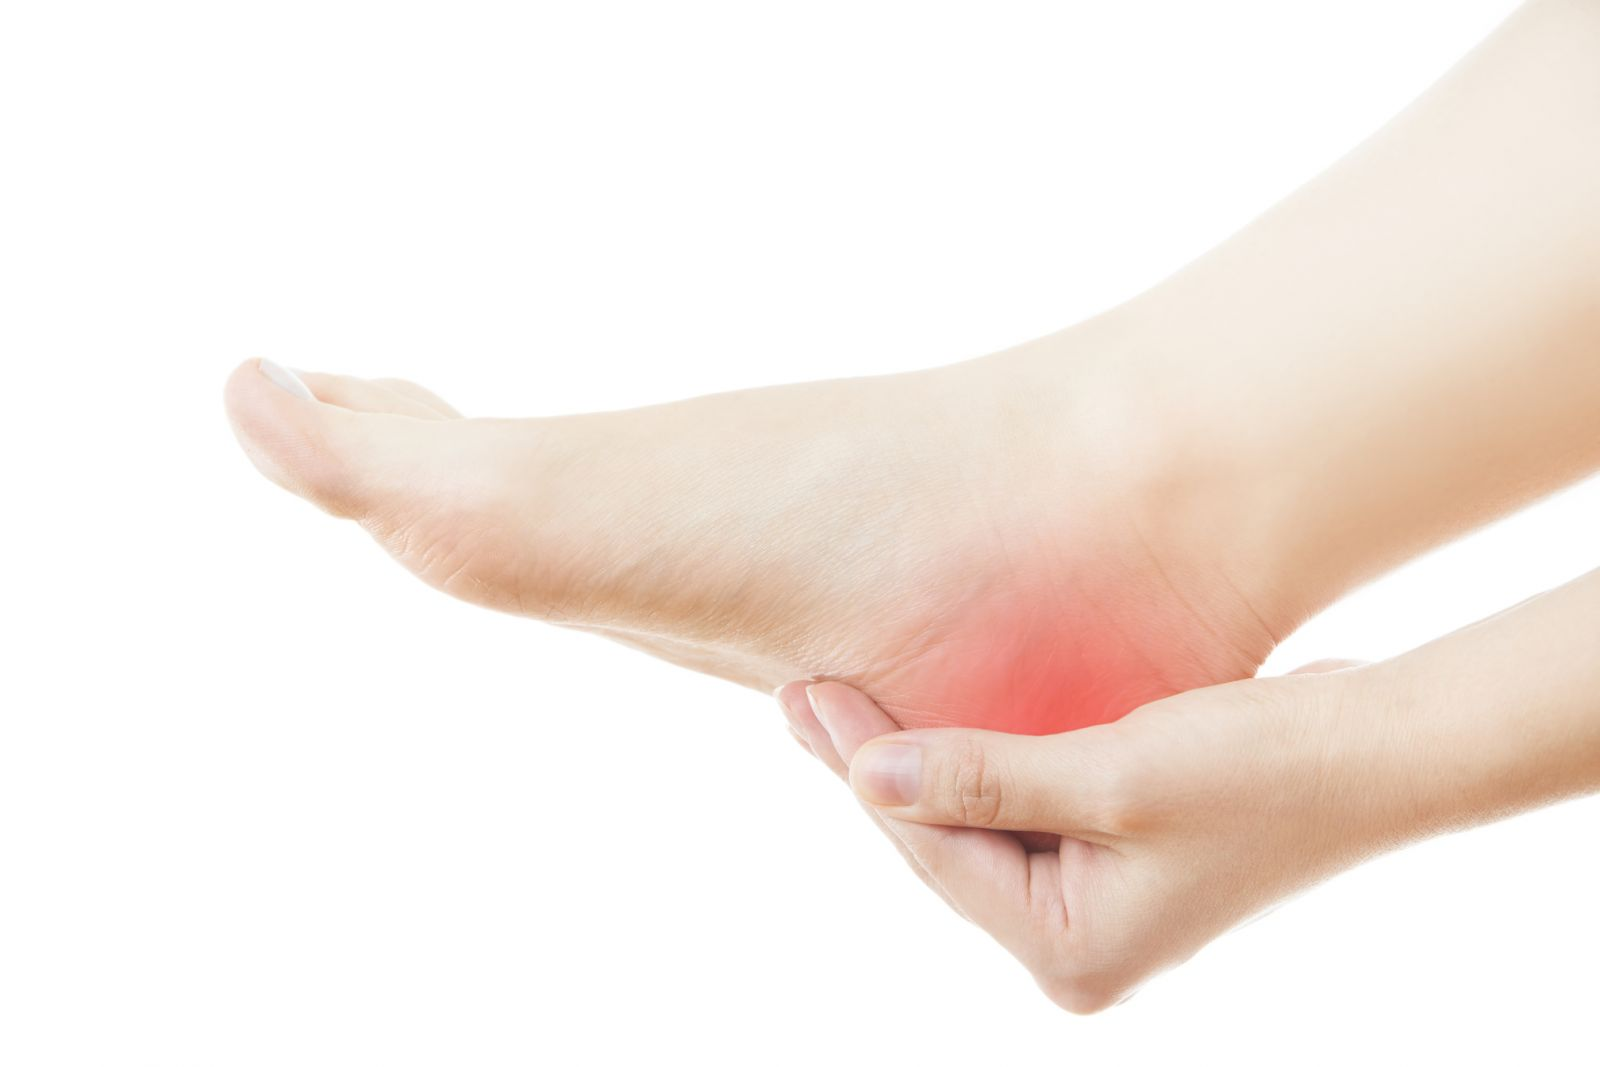 Heel Spur Plantar Fasciitis Natural Treatments In Melbourne | Calcaneal Spur Alternative Ayurvedic Medicine